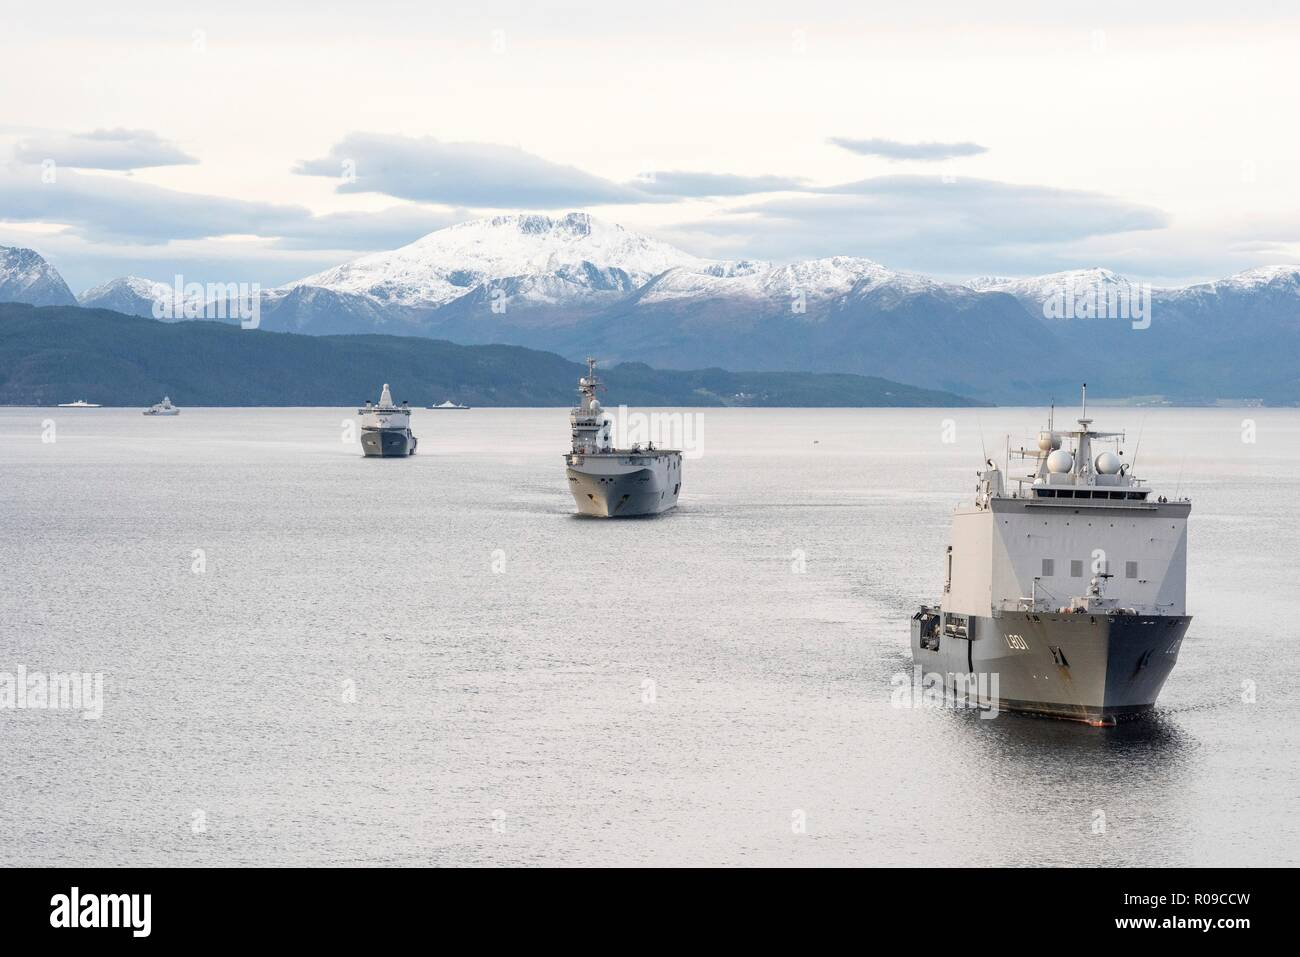 Molde Fjords, Norway. 01st Nov, 2018. The Royal Dutch Navy ship HNLMS Johan de Witt, right, escorts the French Naval ship FS Dixmude, center, followed by the HNLMS Karel Doormanin during an Amphibious Assault at Exercise Trident Juncture 18 November 1, 2018 in Molde Fjords, Norway. The multi-national exercise is the largest NATO exercise since 2015, and includes more than 50,000 military members from 31 countries. Credit: Planetpix/Alamy Live News - Stock Image